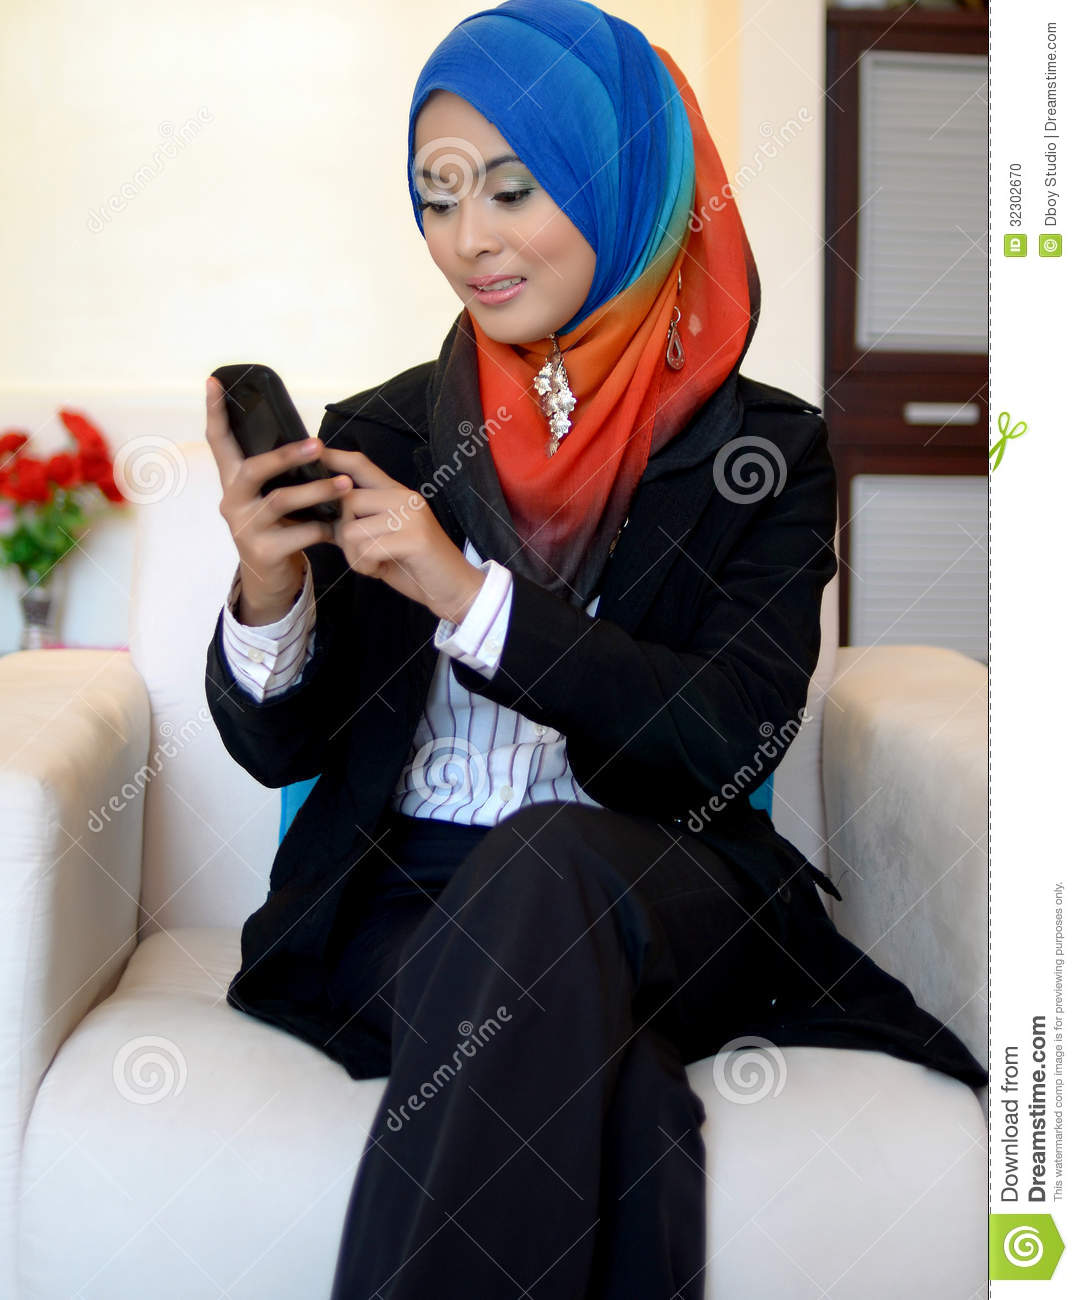 mobile muslim single women Meet and chat beautiful muslim girls and arab women is the largest online community where single muslim girls can find single men compatible for their muslim.